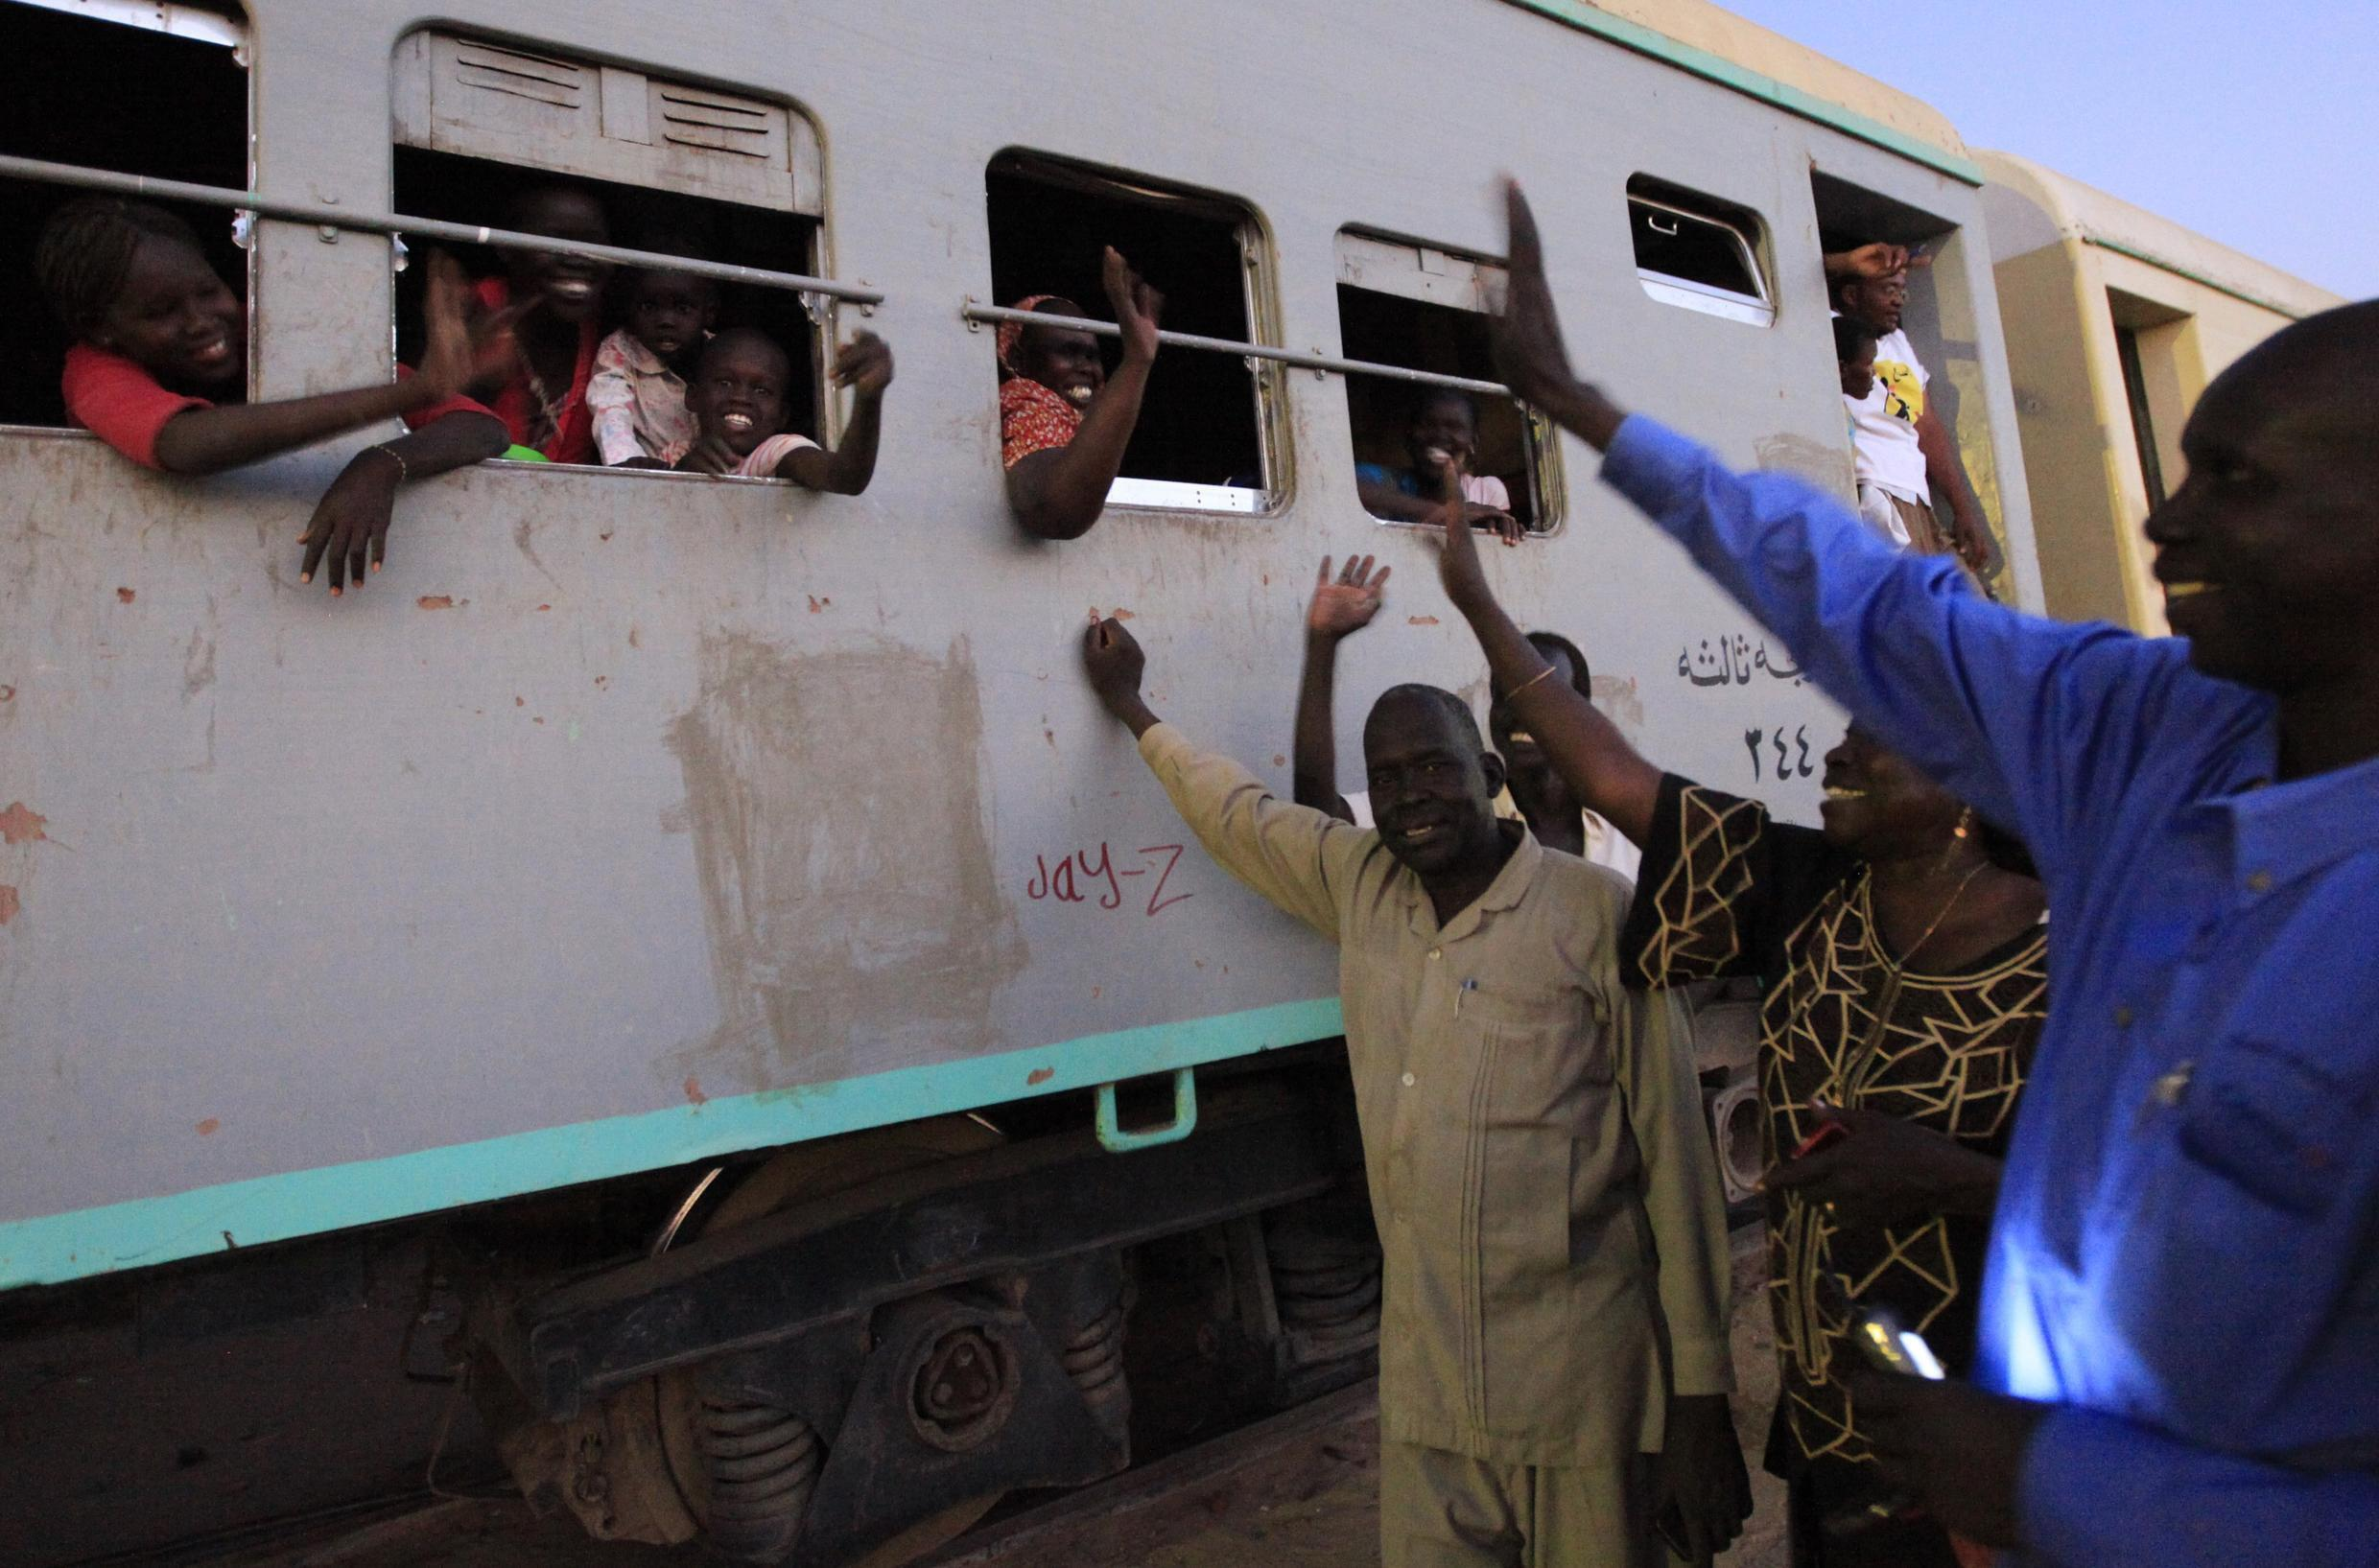 A Southern Sudanese family wave at their relatives from a train as they travel to South Sudan, in Khartoum